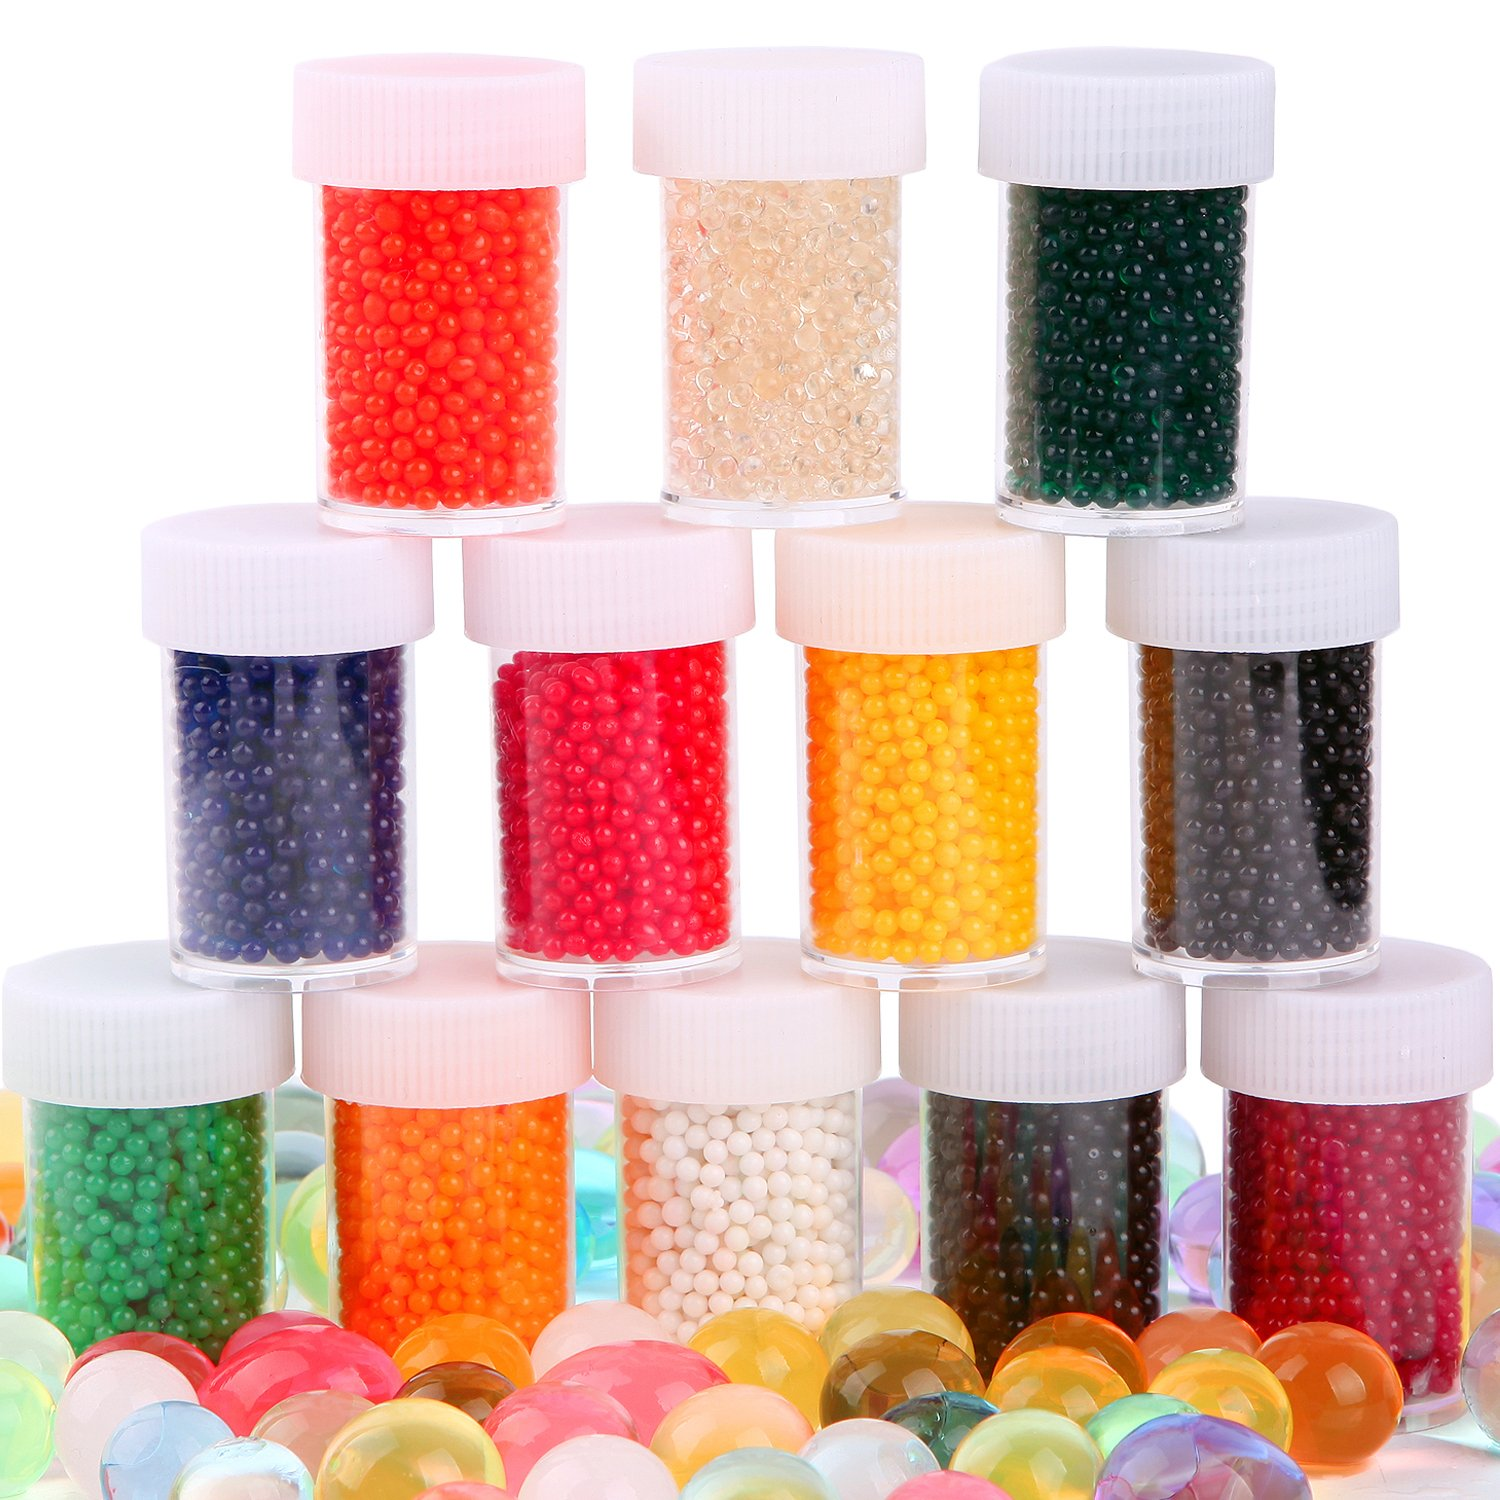 AINOLWAY 12 Pack Combo Water Beads Decoration Vase Filler Water Beads Gel 12 Colors Non Toxic Water Sensory Toy for Kids 20 000 Beads